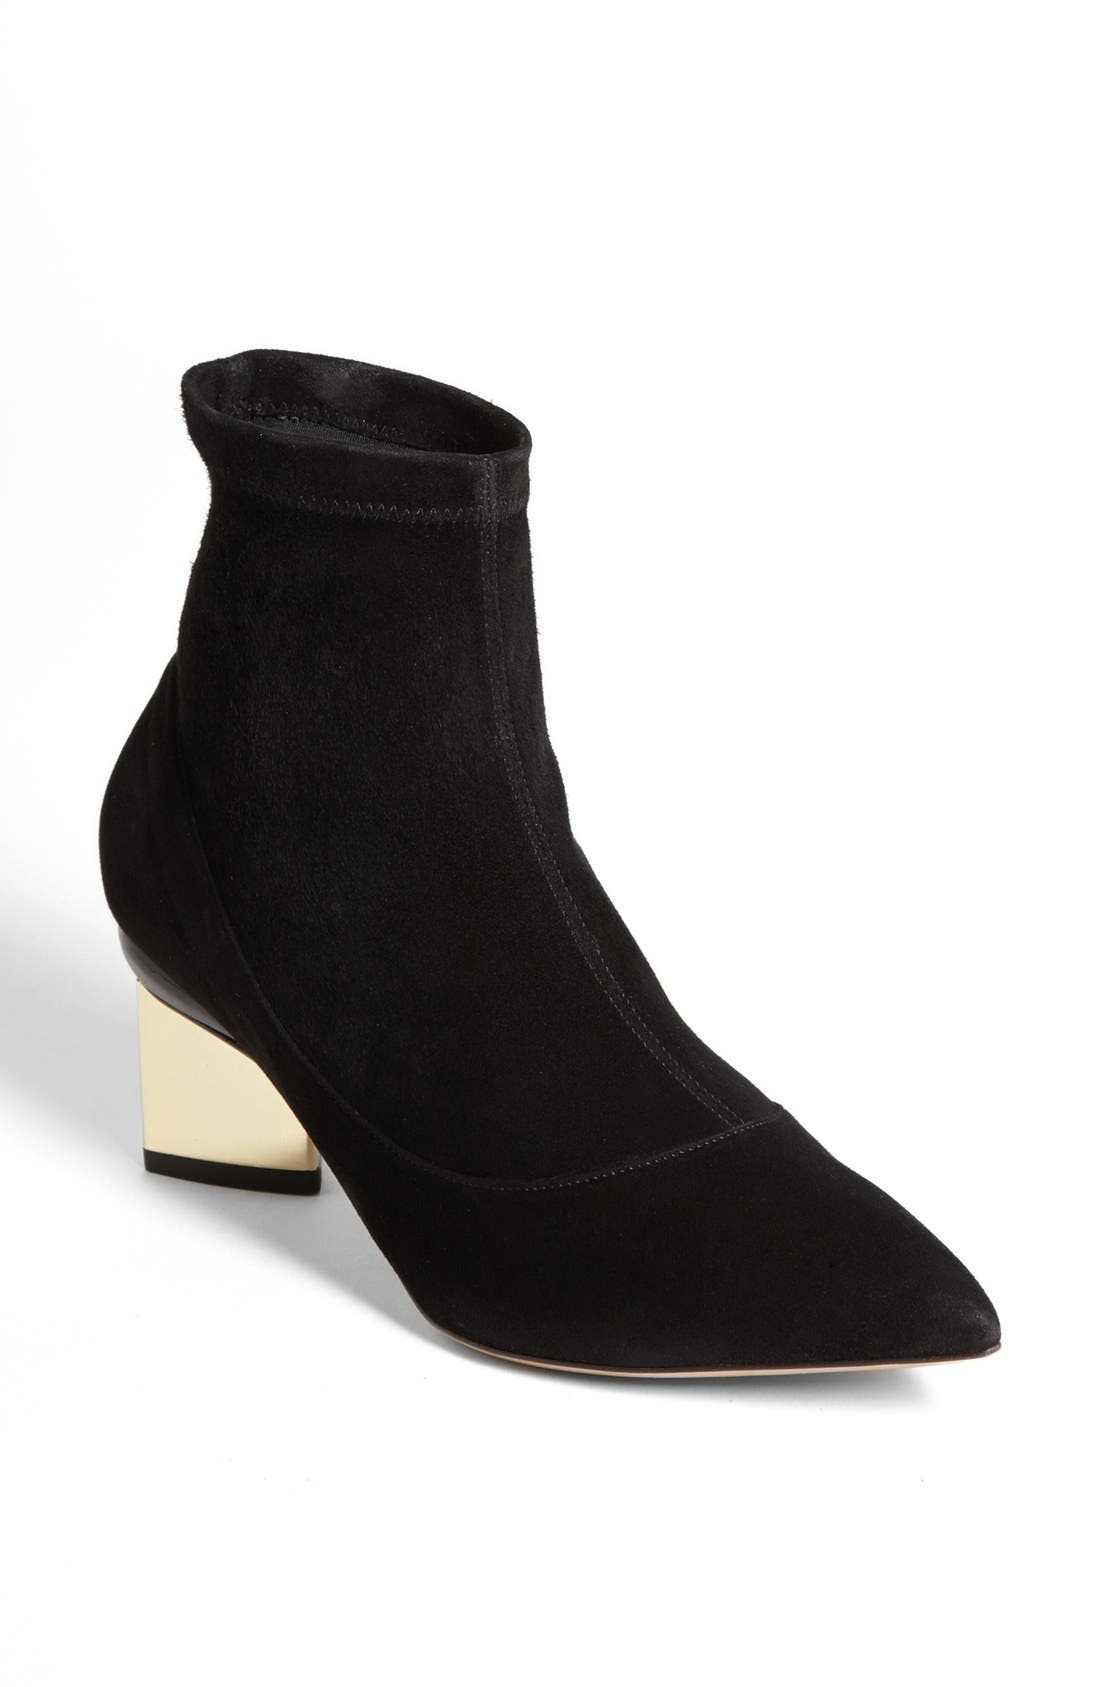 Alternate Image 1 Selected - Nicholas Kirkwood Stretch Suede Bootie